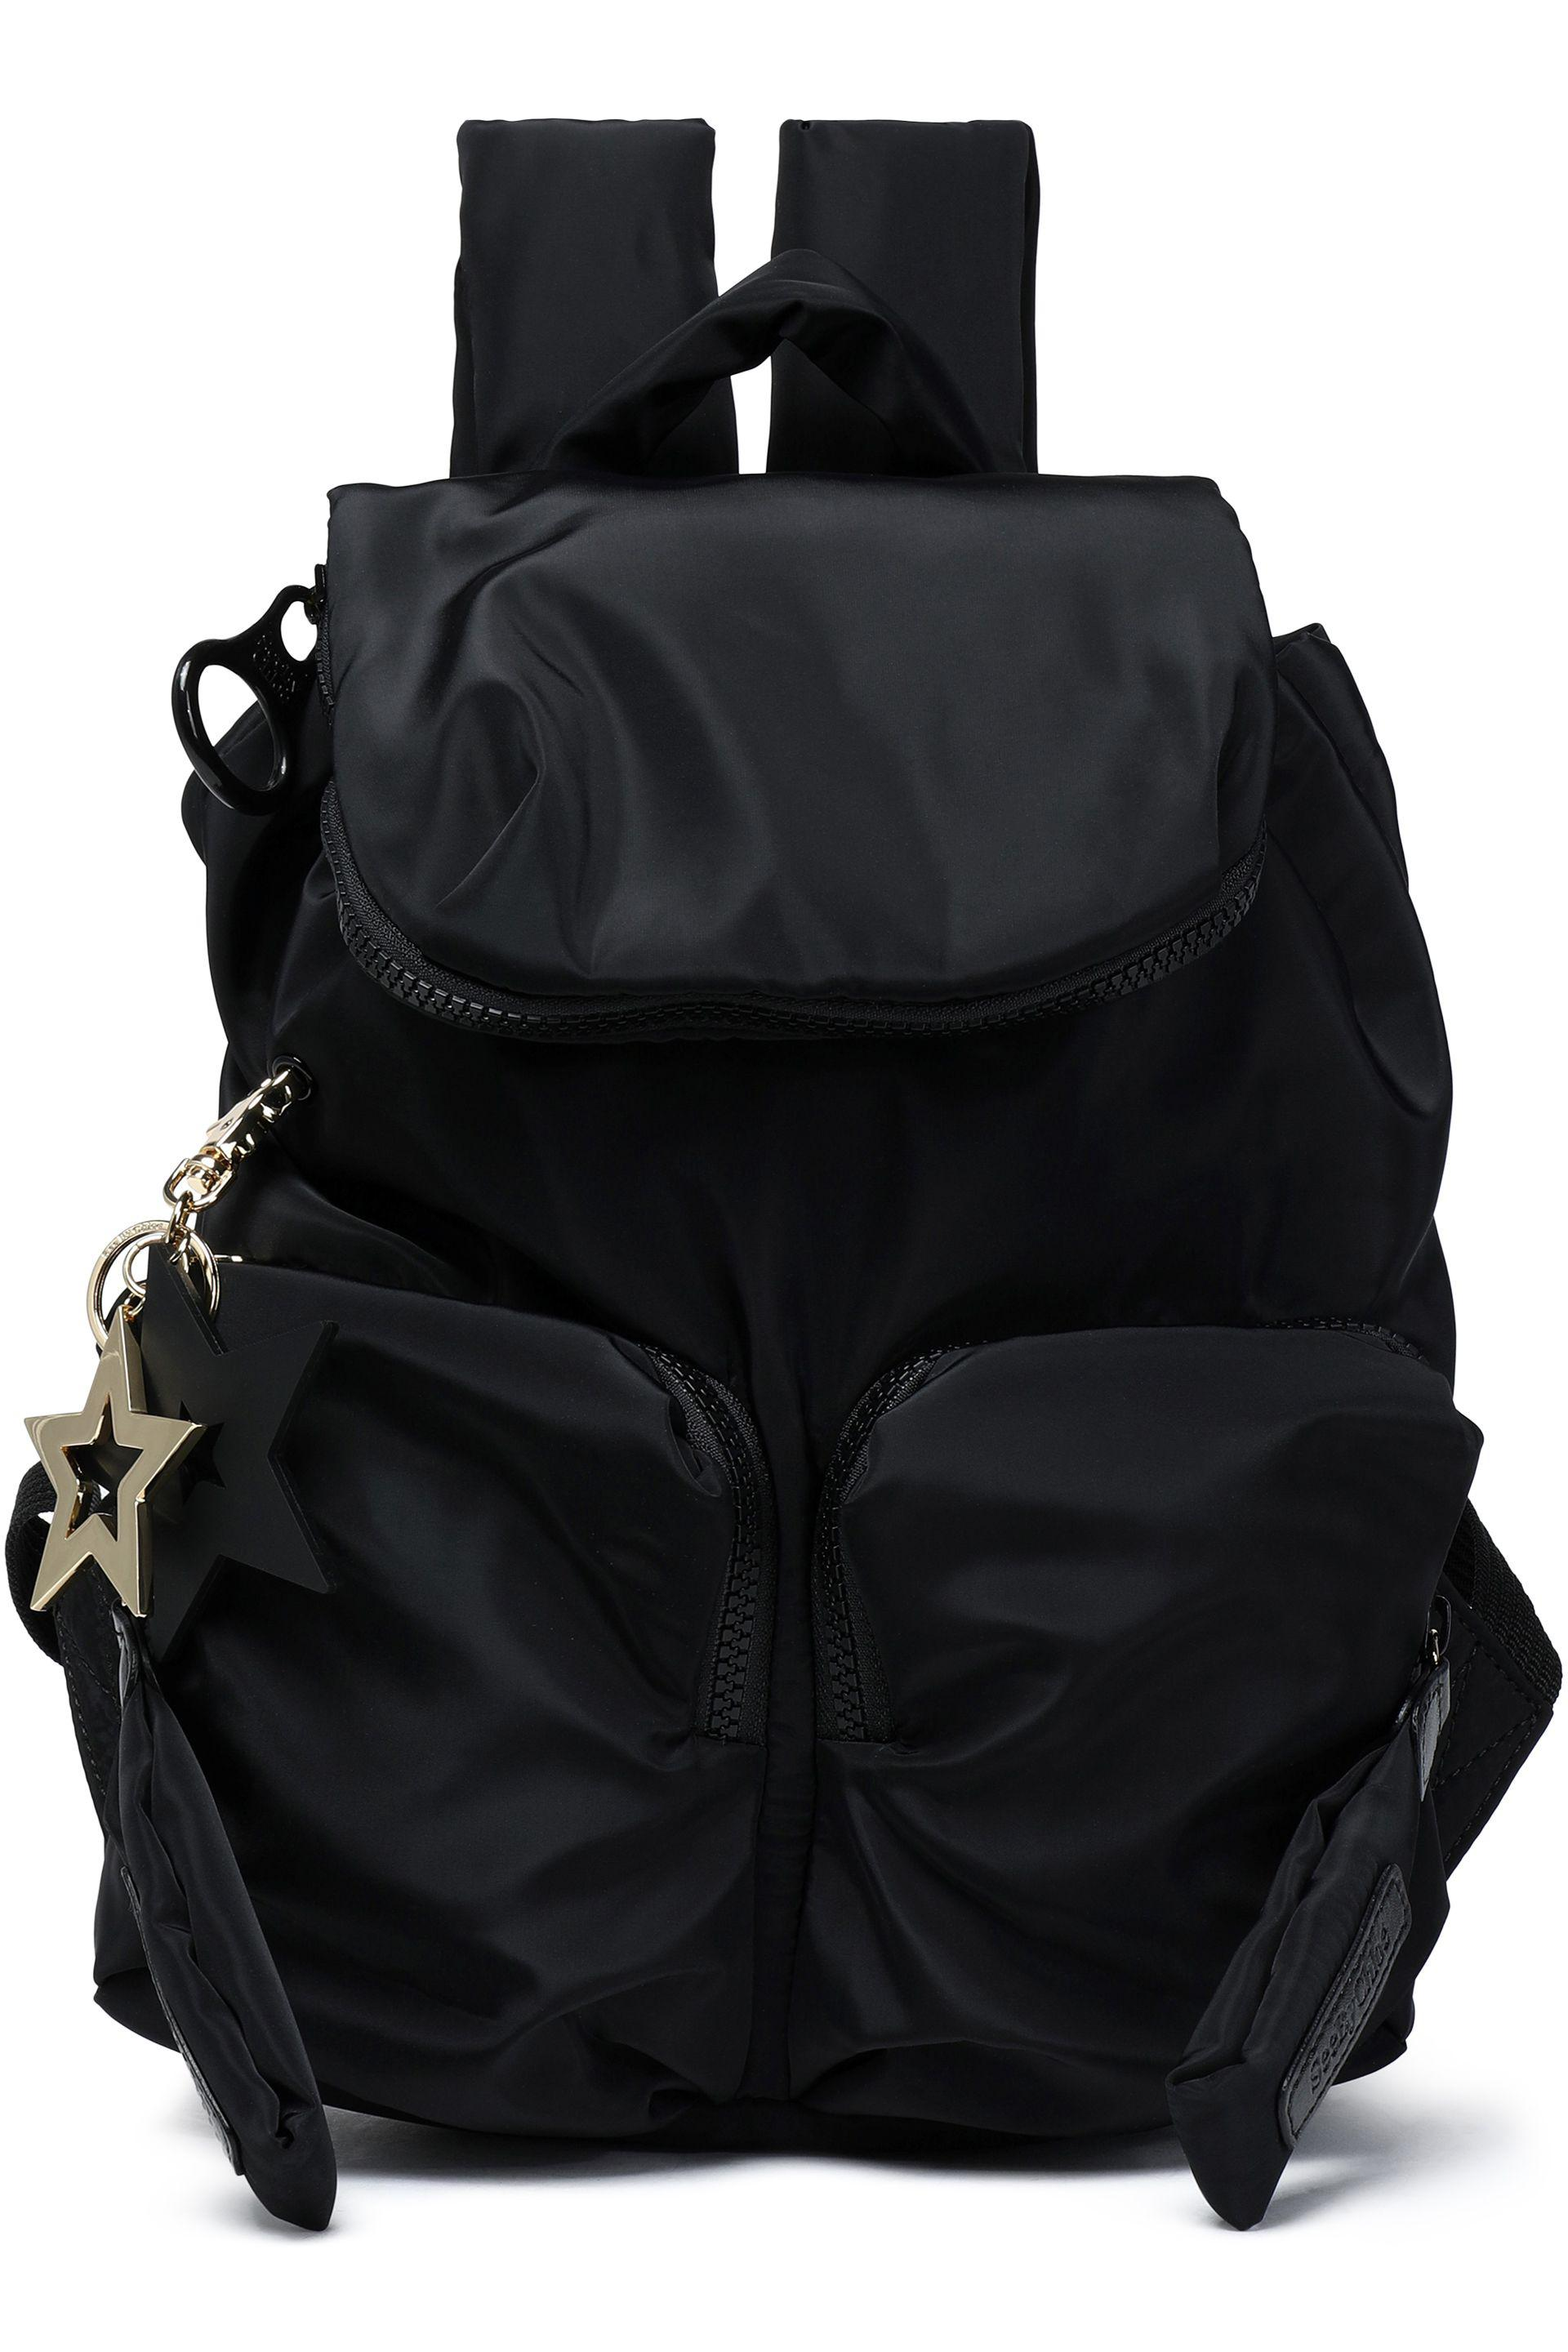 Lyst - See By Chloé Joyrider Shell Backpack in Black 8401f49d78e58